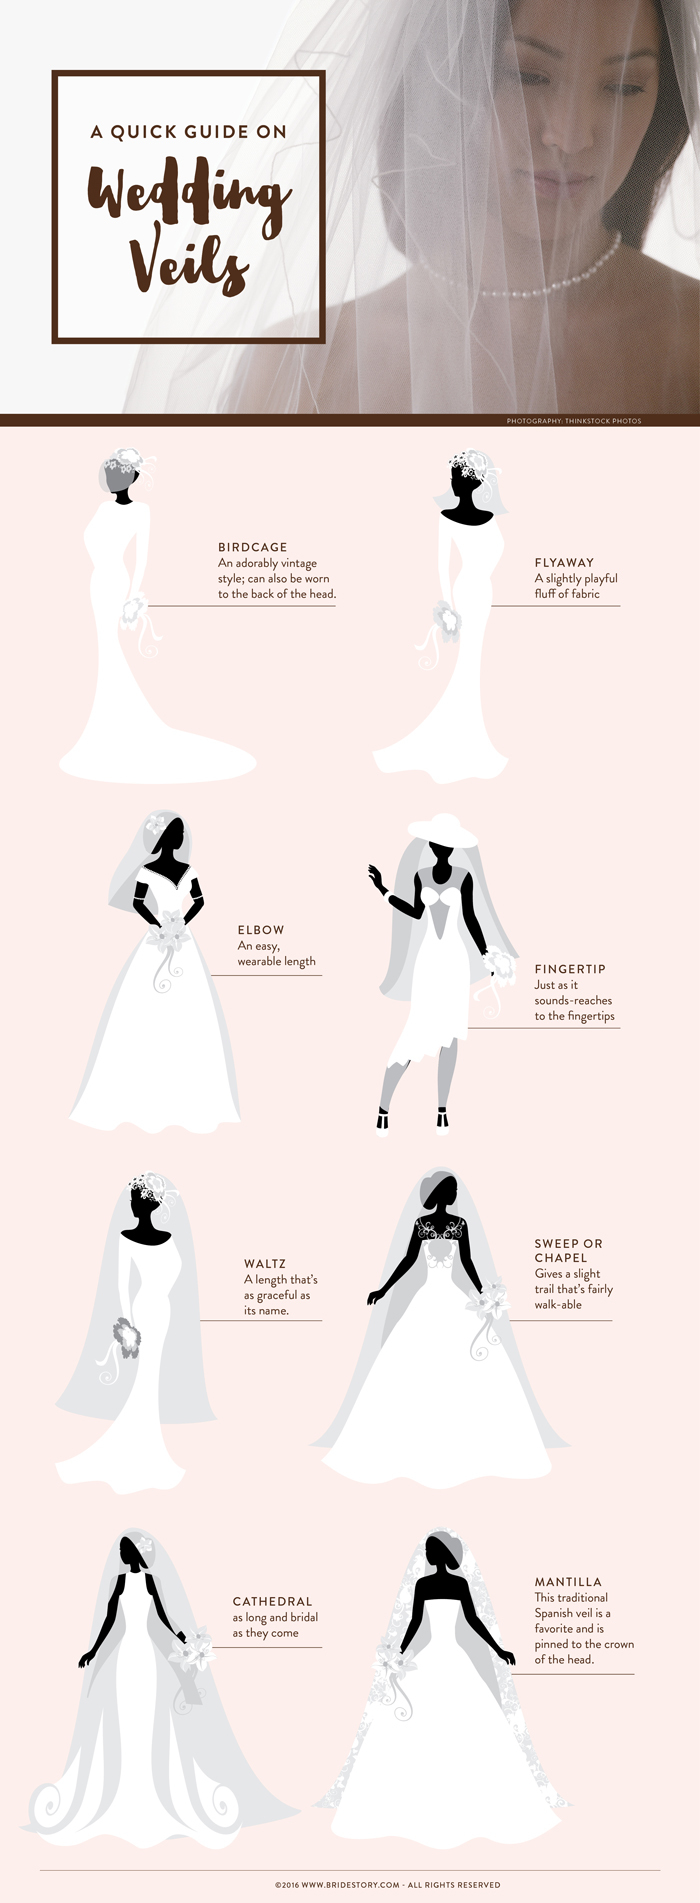 As You May Have Noticed Veils Come In Different Shapes Sizes And Materials Based On Length There Are A Few Types Of